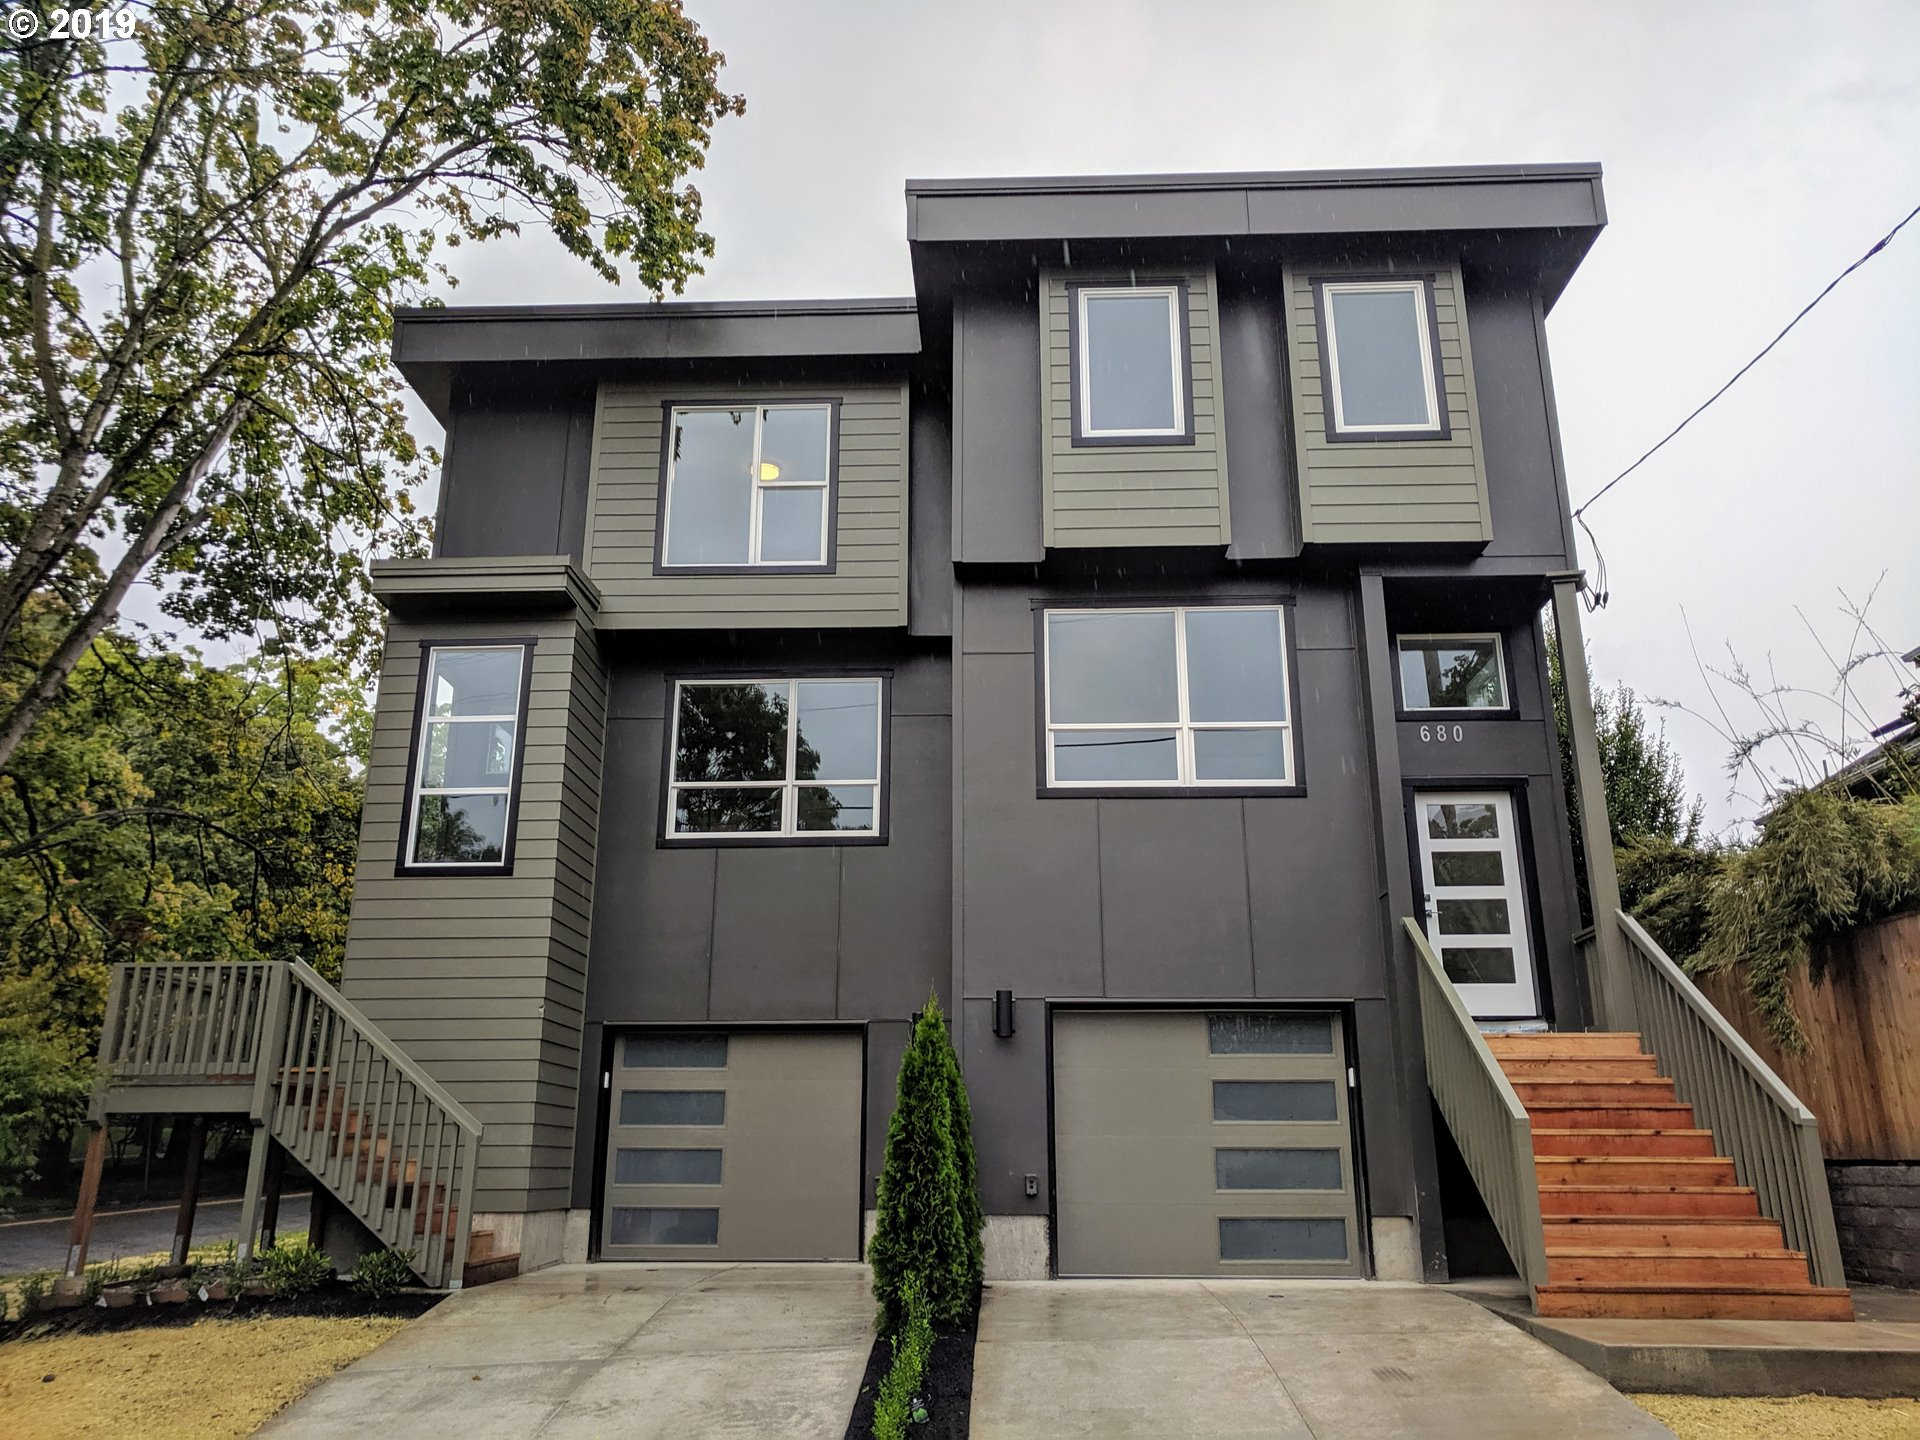 Beautiful modern townhouse style condo in the heart of the Eliot/Irvington neighborhood. 4 bedrooms, 3.5 bathrooms with lots of space. Great natural light with a fantastic view of Irving Park. High end finishes throughout with quartz counter tops and stainless steel appliances. Basement guest suite has a separate entrance and view of the Park.